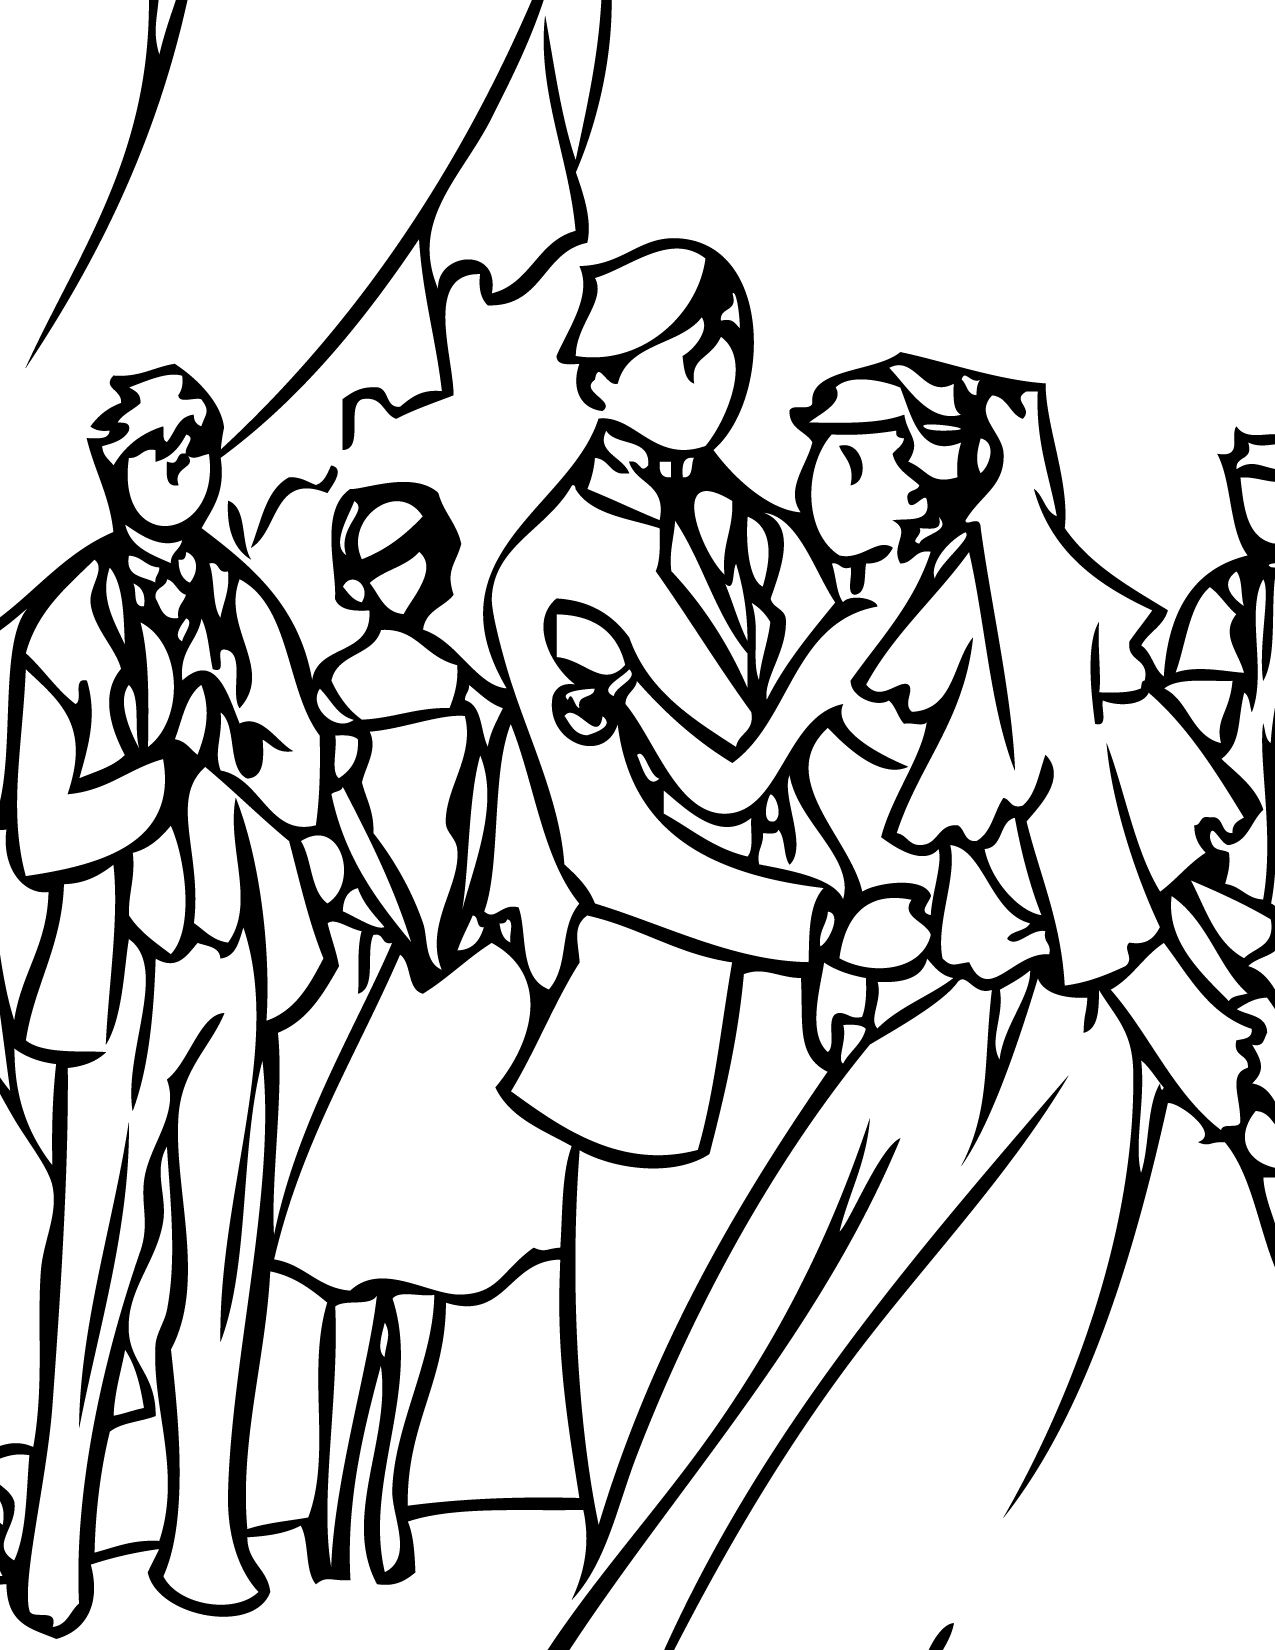 Coloring book wedding pictures - Print And Color A Wedding Reception Coloring Book With Your Kids